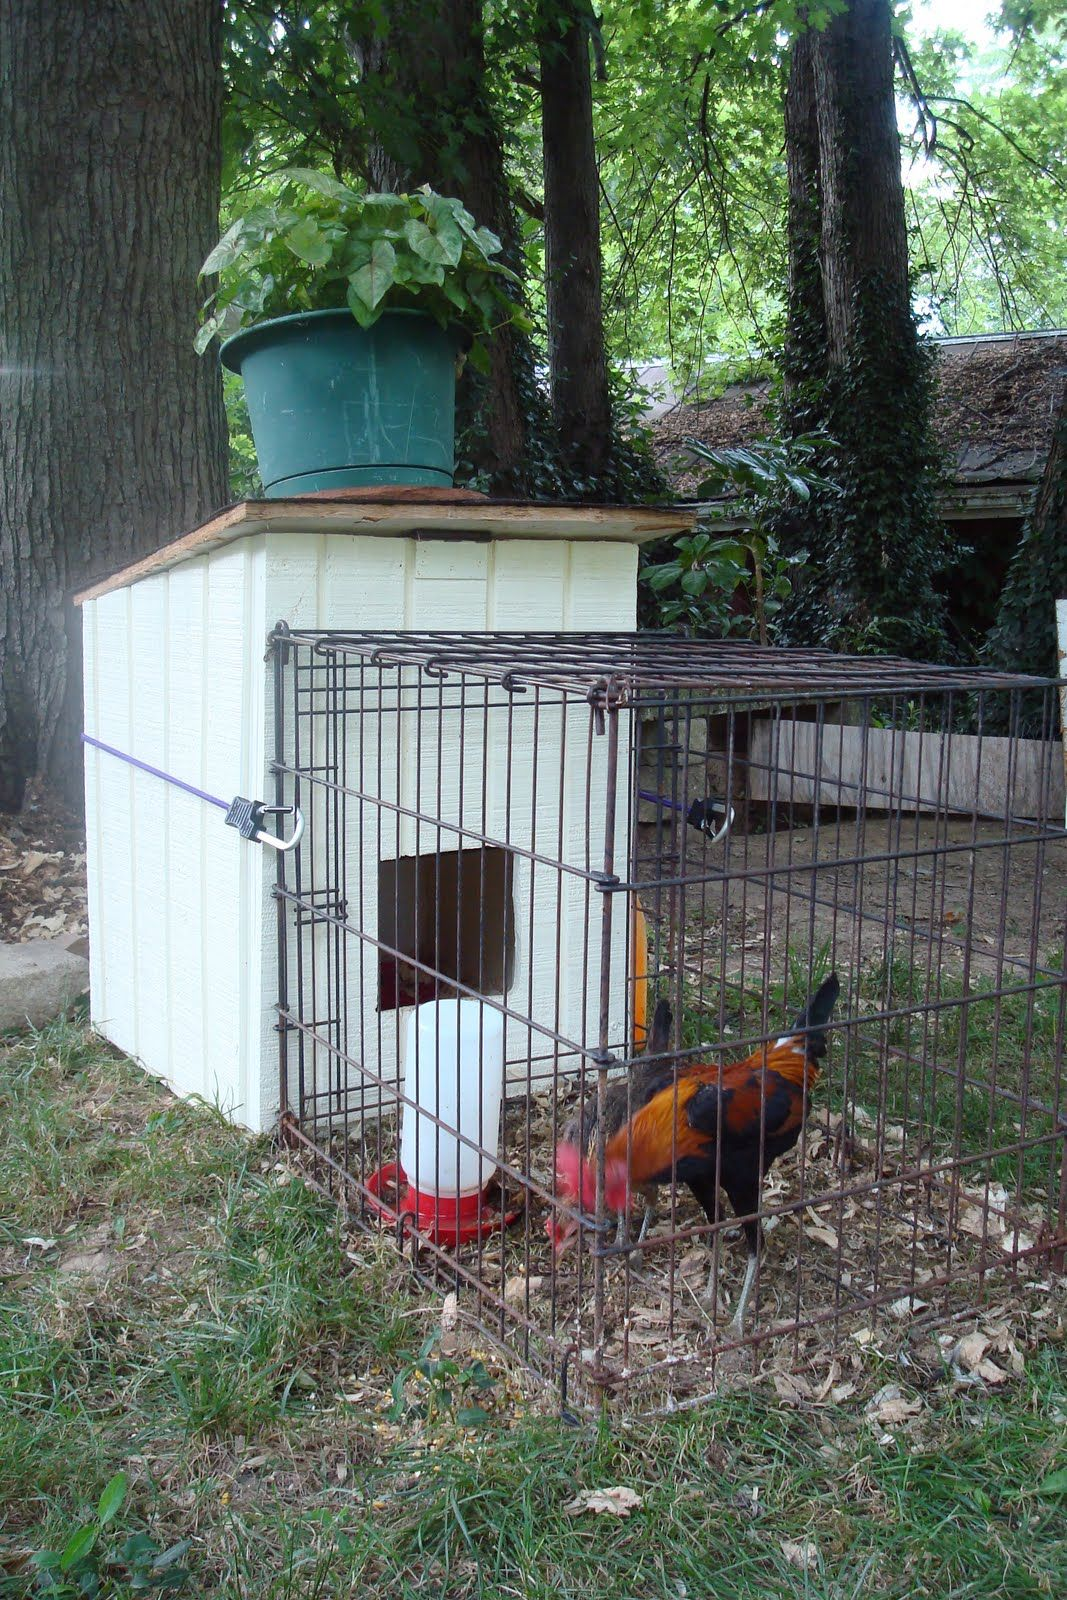 Hectichousehold Chickens And Coops And Runs Chicken Coop Run Portable Chicken Coop Diy Chicken Coop